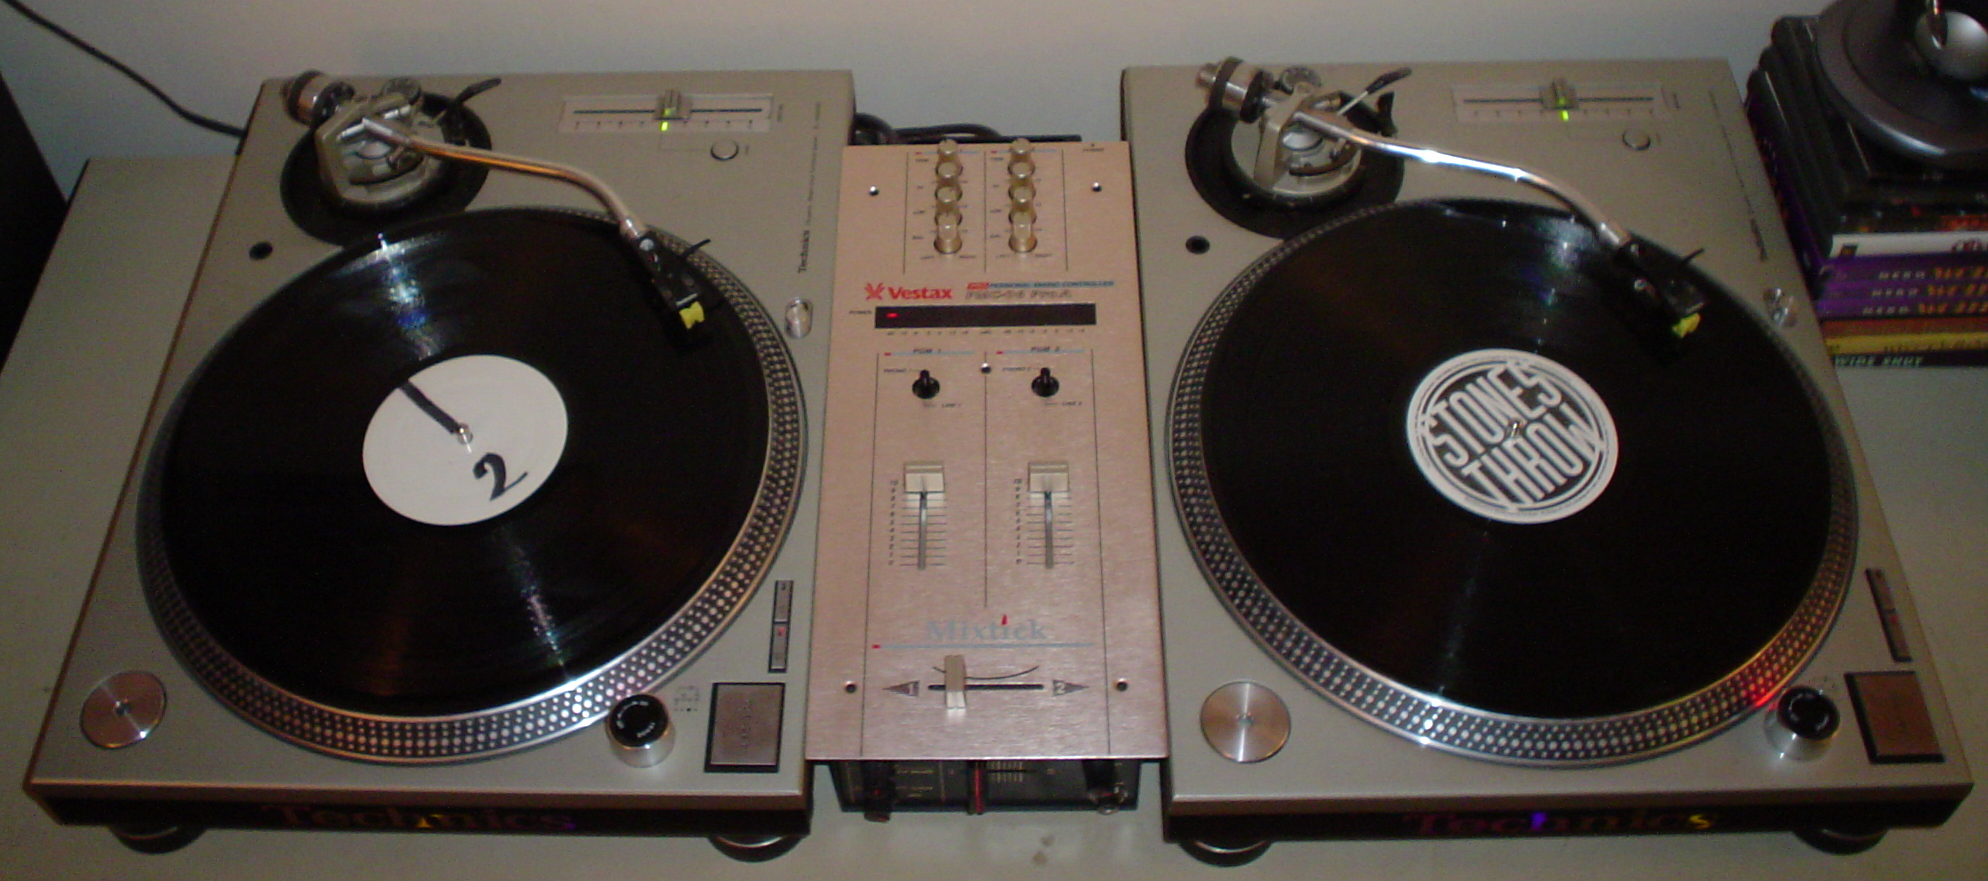 https://upload.wikimedia.org/wikipedia/commons/6/64/Turntables_and_mixer.jpg